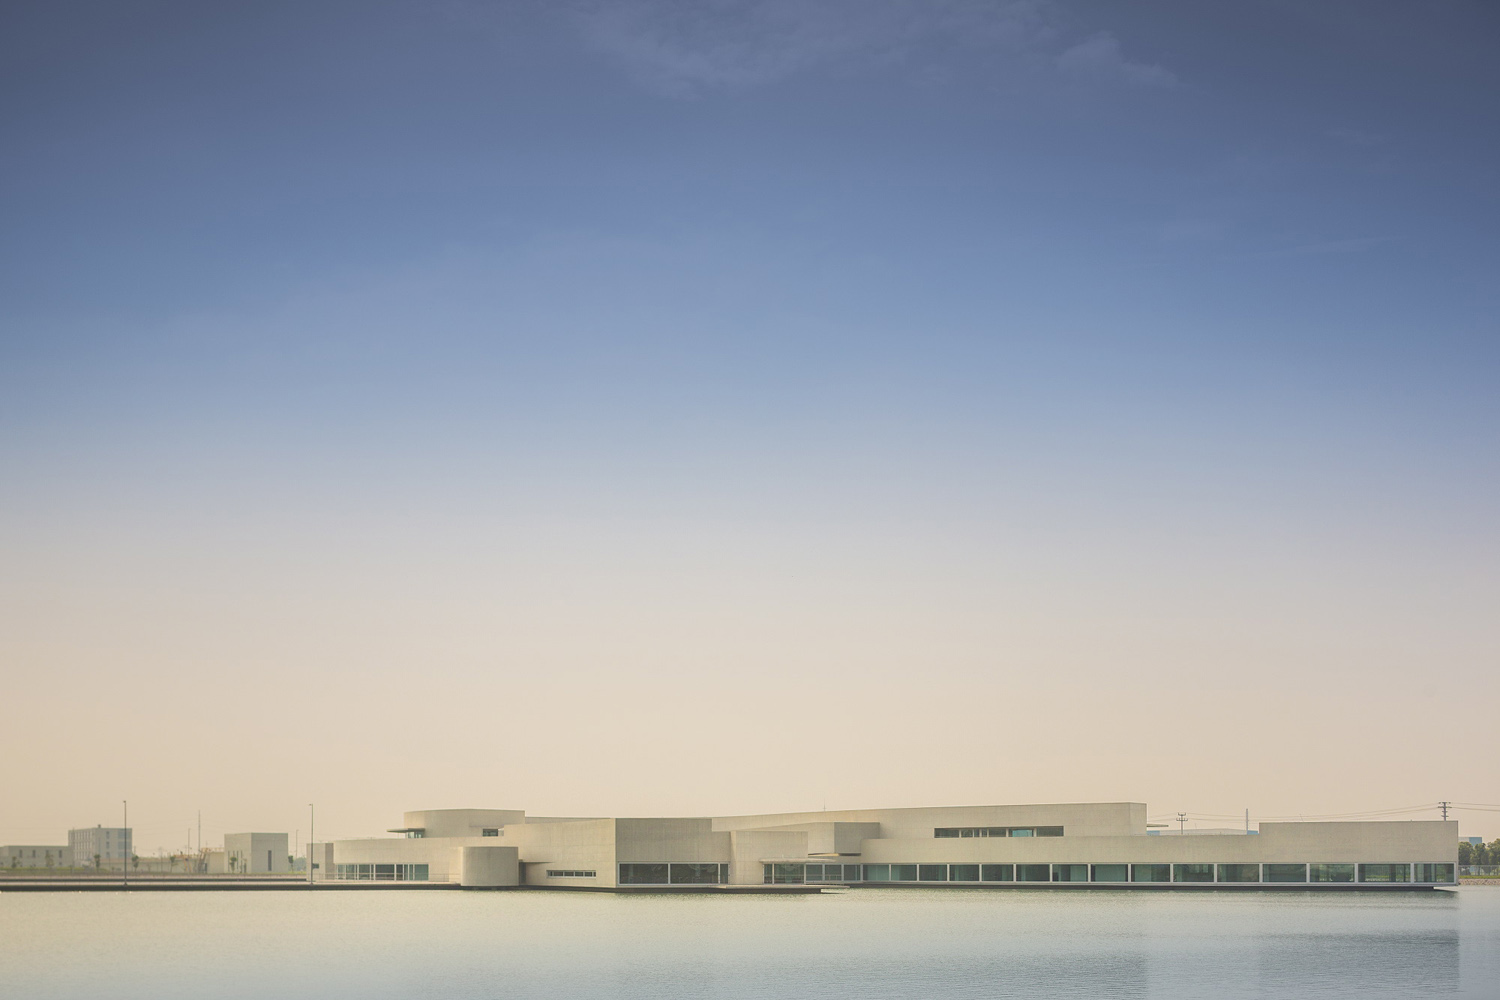 mm_The Building on the Water design by Álvaro Siza + Carlos Castanheira_07